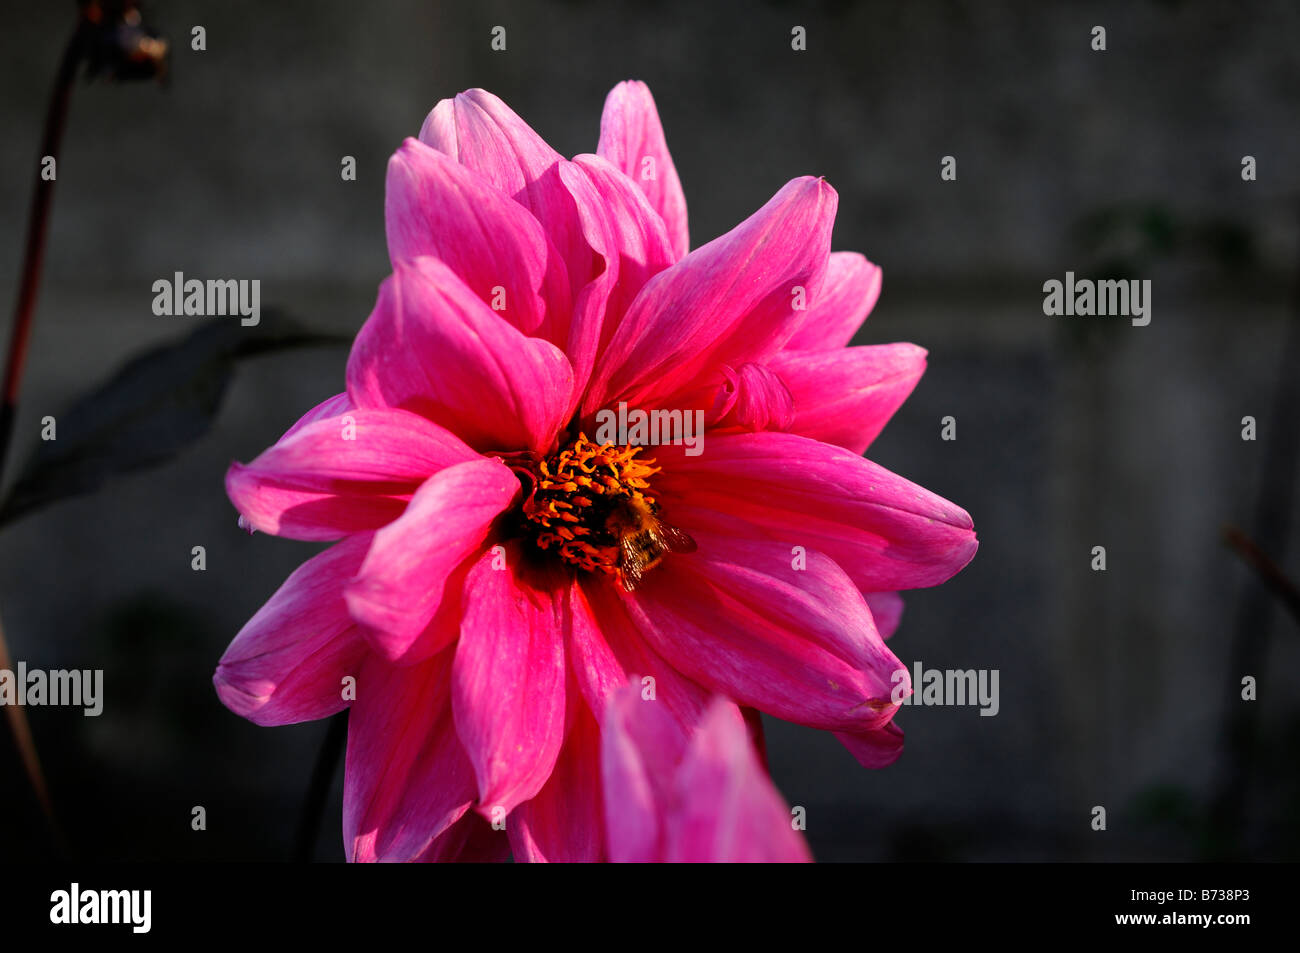 dahlia fascination pink flower - Stock Image